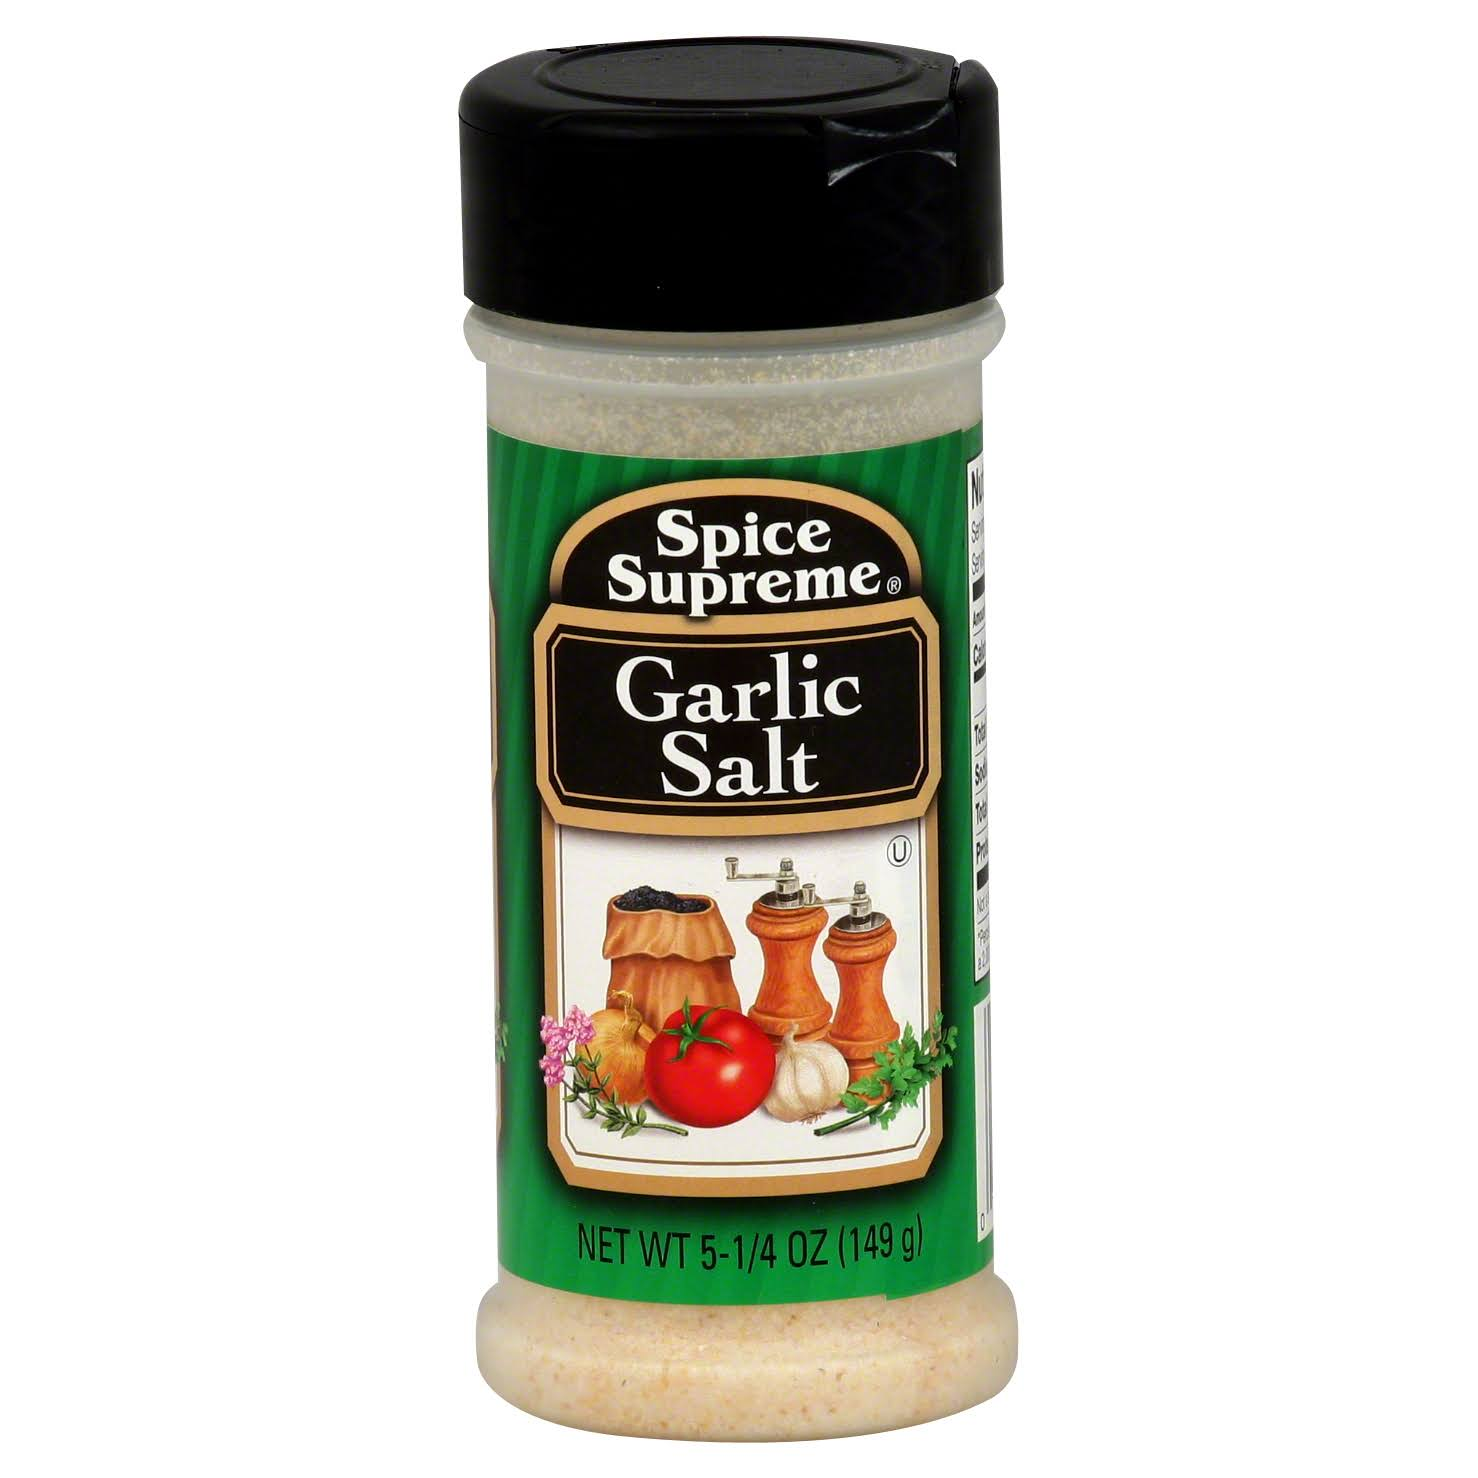 Spice Supreme Garlic Salt - Case of 12